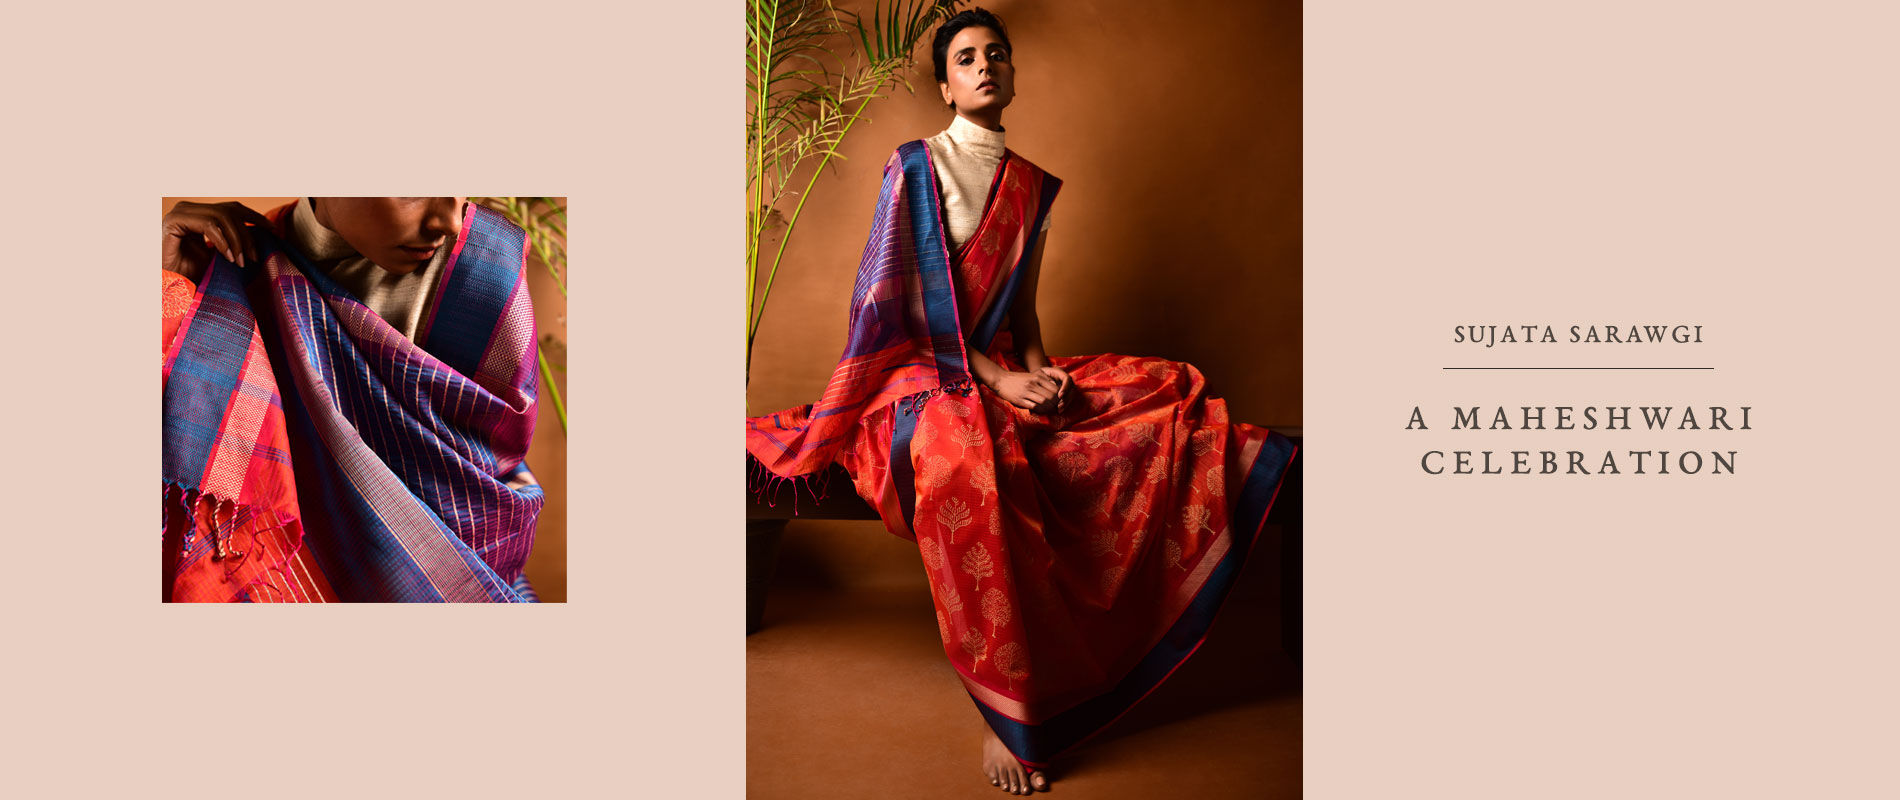 Jaypore Com Curated Online Shop For Handpicked Products